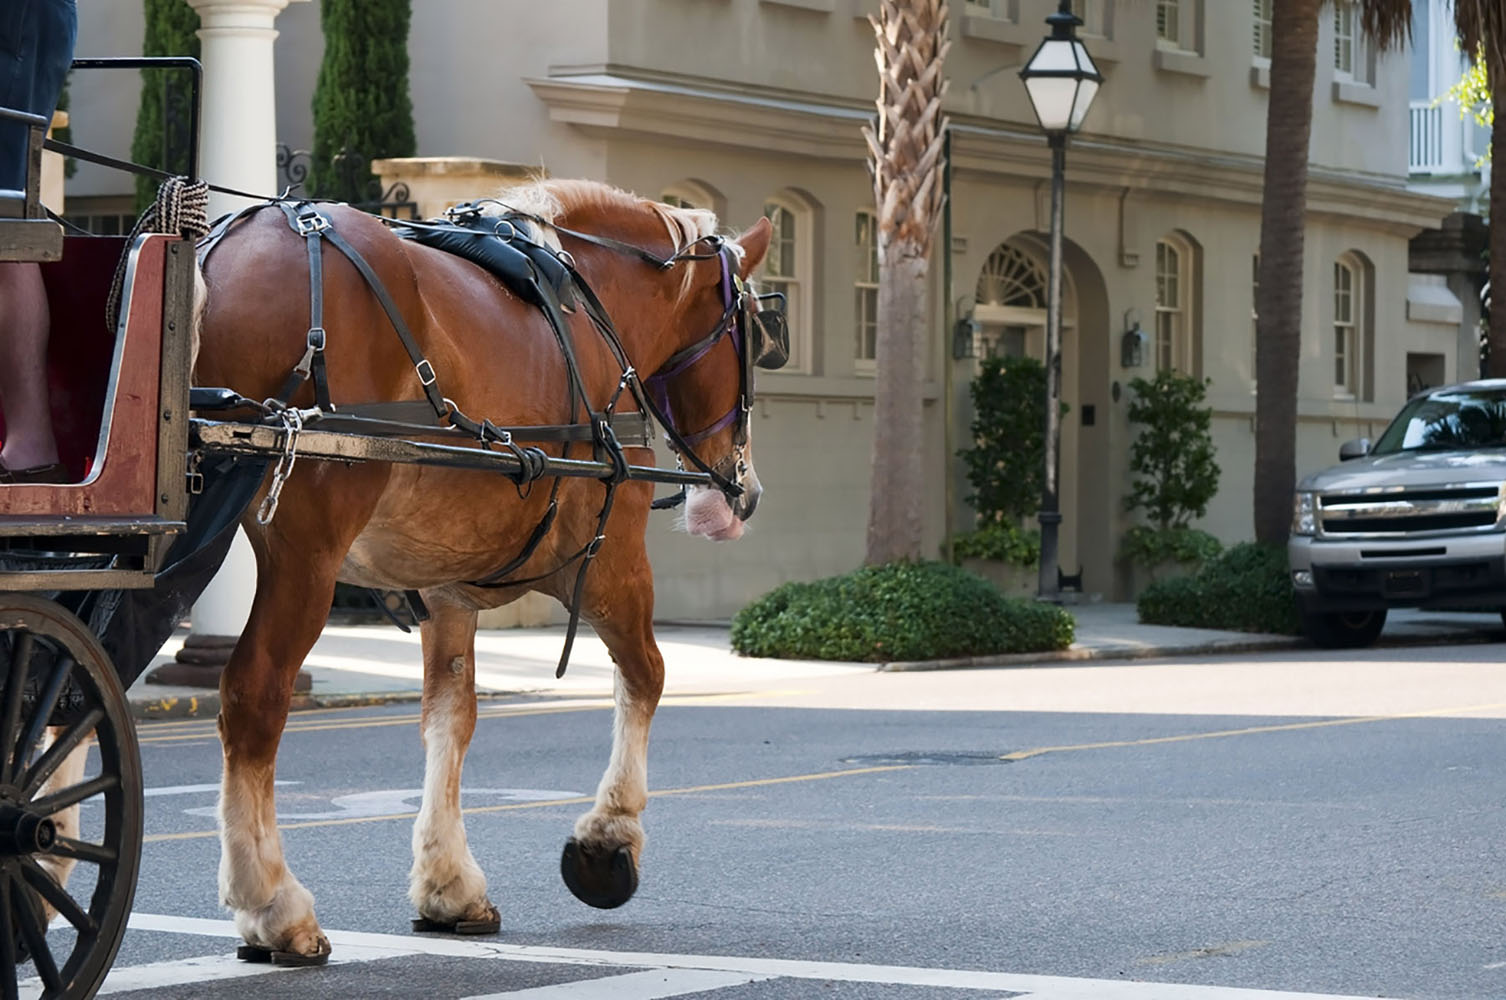 A horse-drawn carriage in Charleston, South Carolina